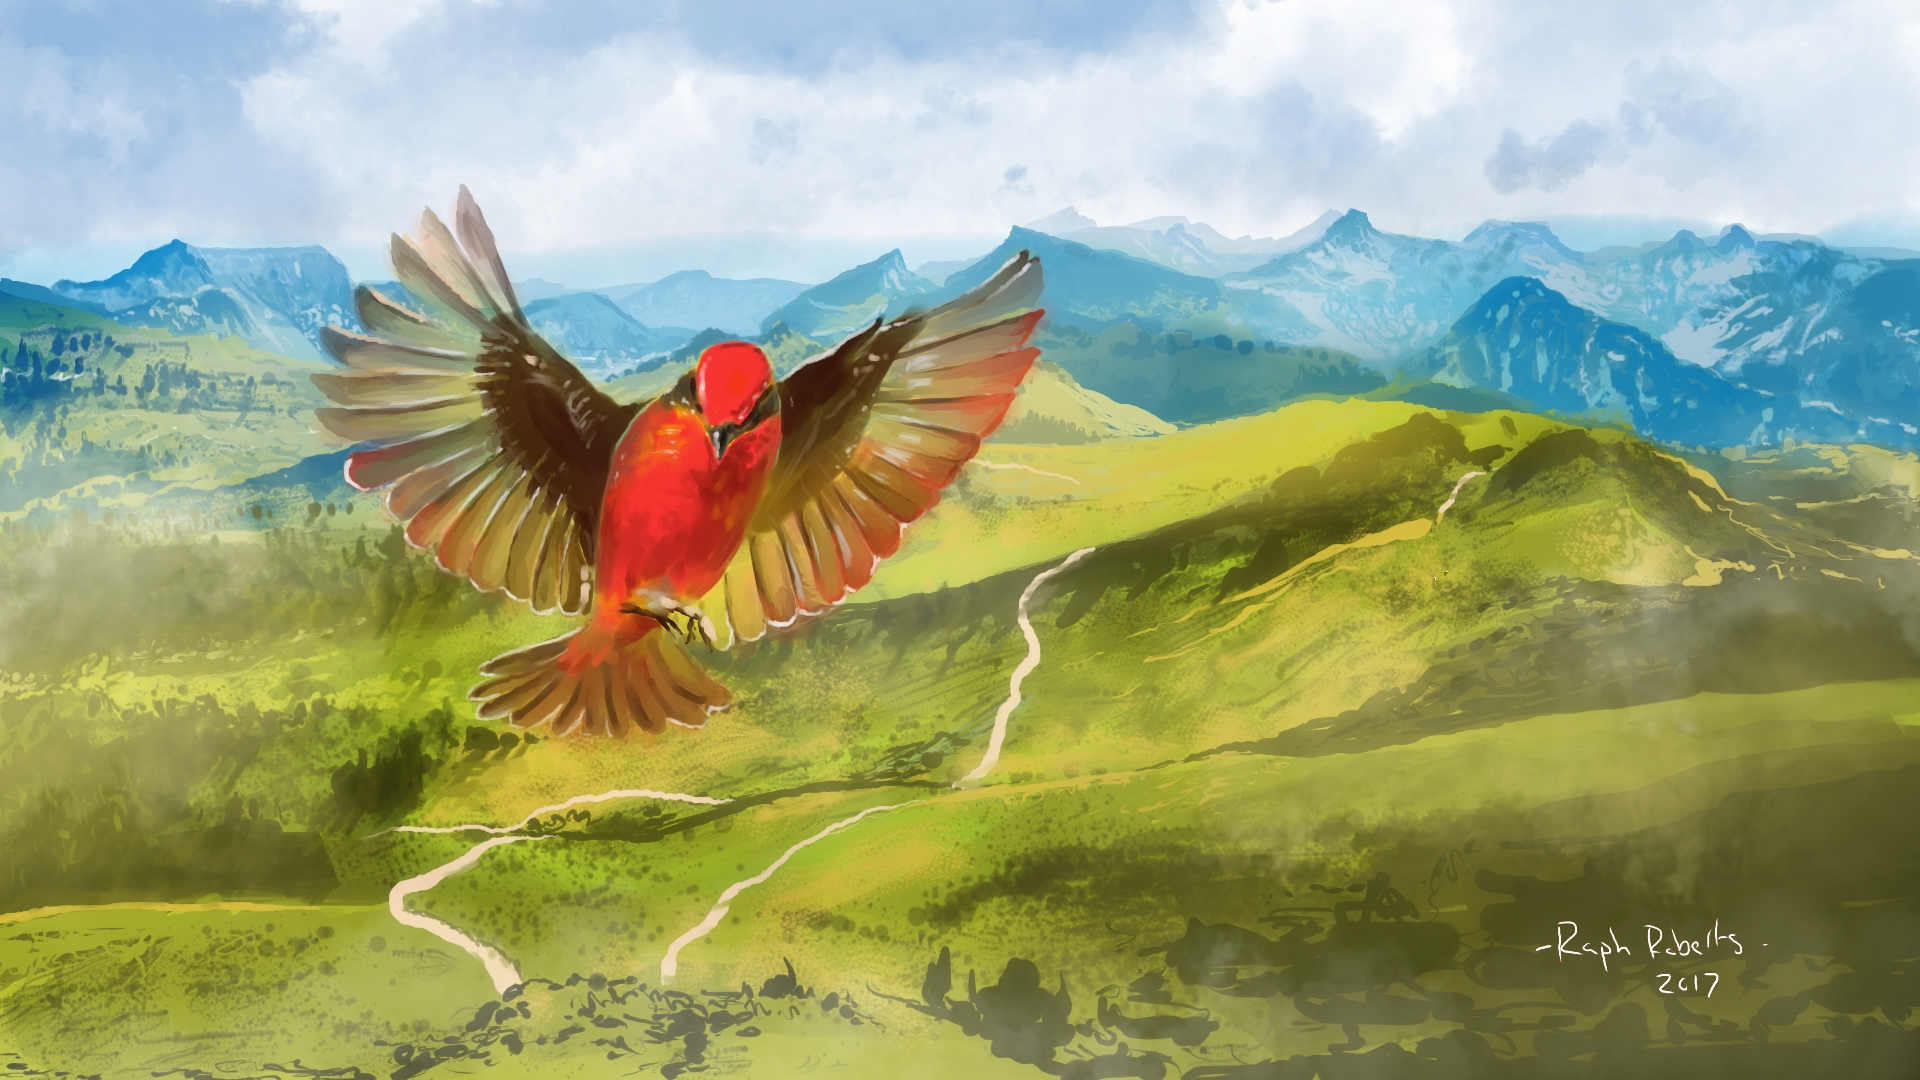 A painting of a red bird